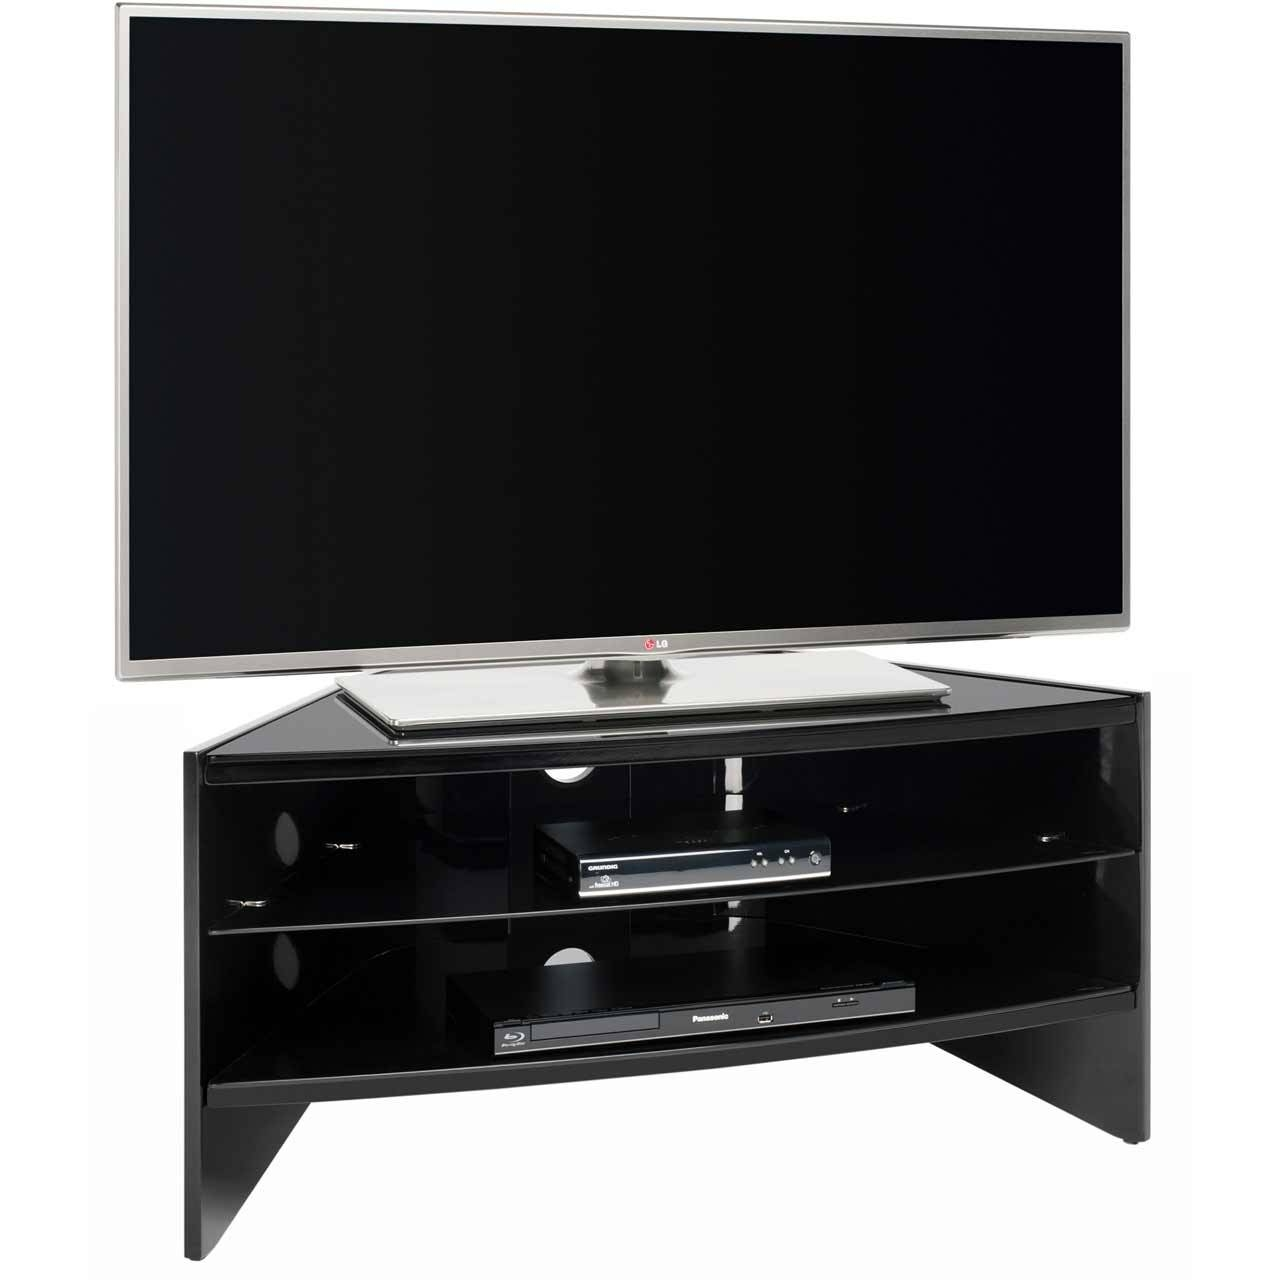 Riva Rv100B | Techlink Tv Stand| | Ao intended for Techlink Riva Tv Stands (Image 7 of 15)